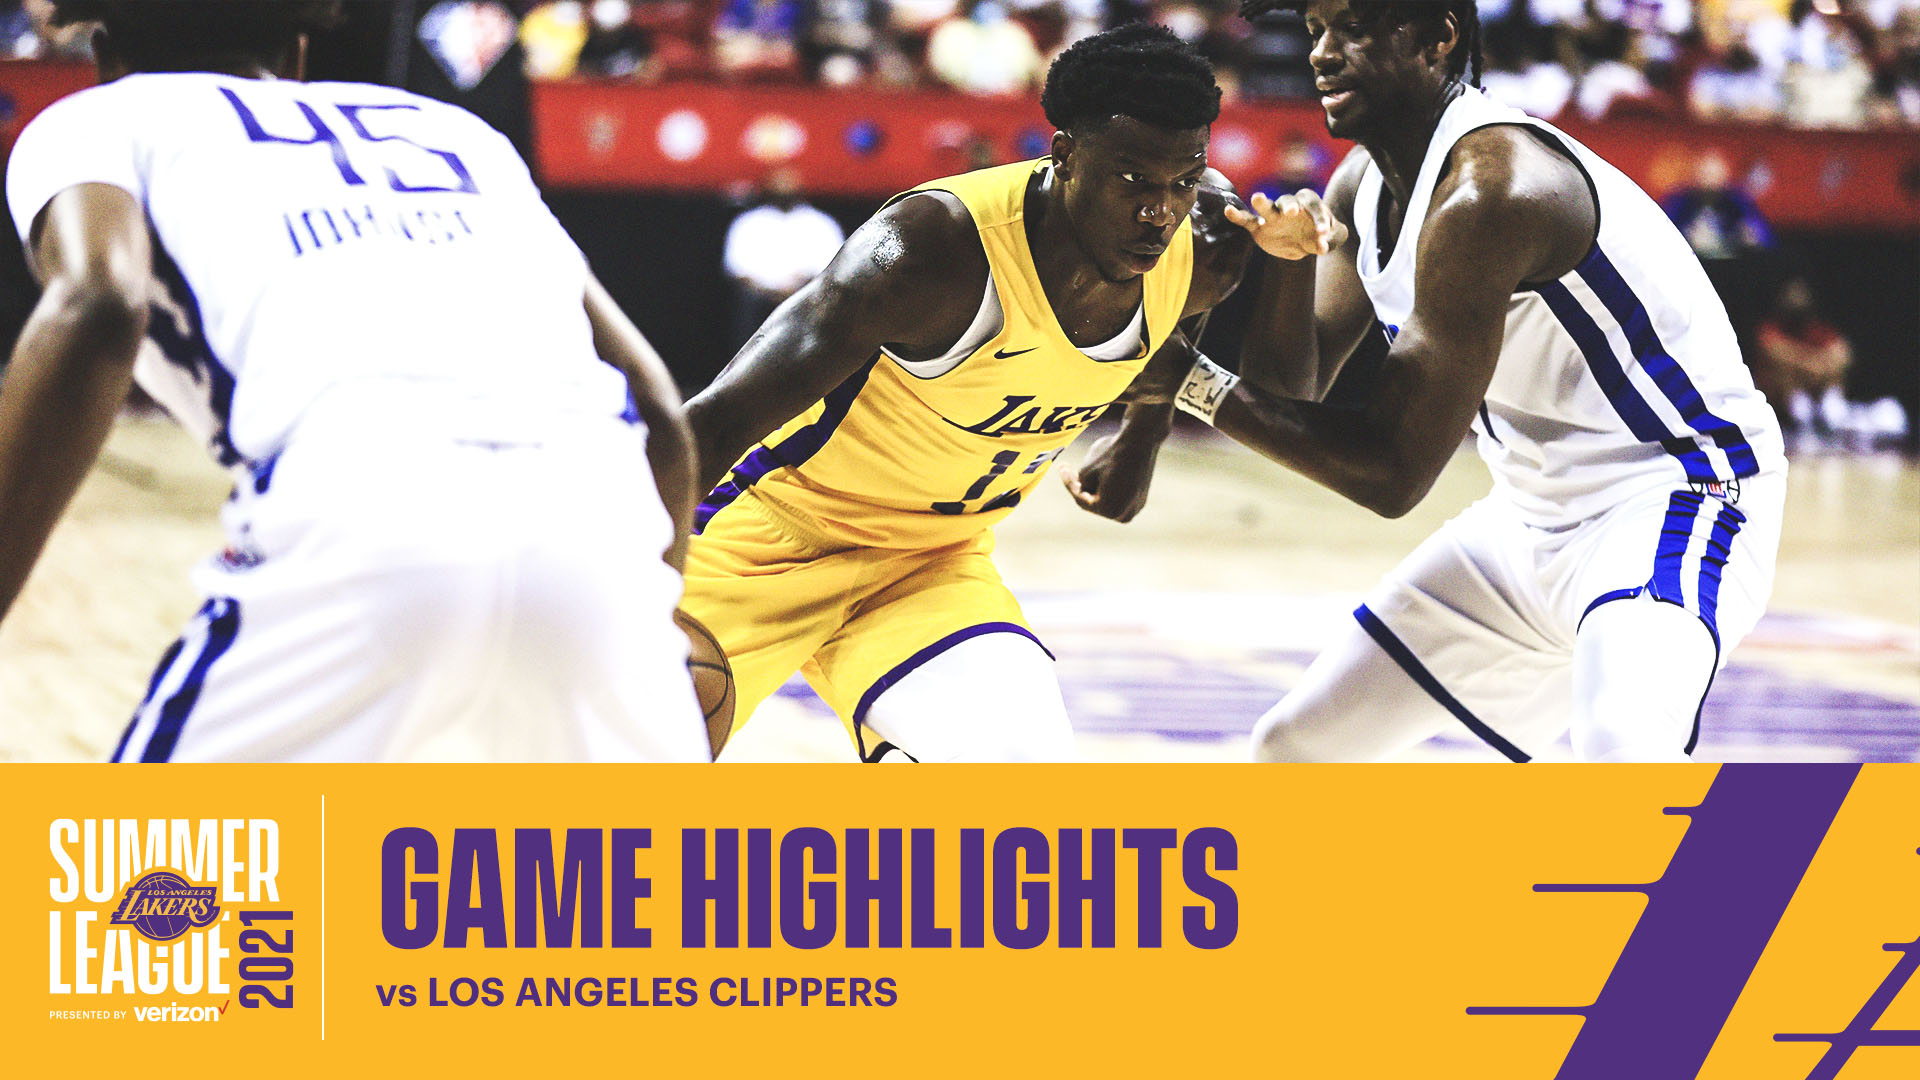 HIGHLIGHTS   Devontae Cacok (12 pts, 5 reb, 4 ast) vs LA Clippers   Lakers Summer